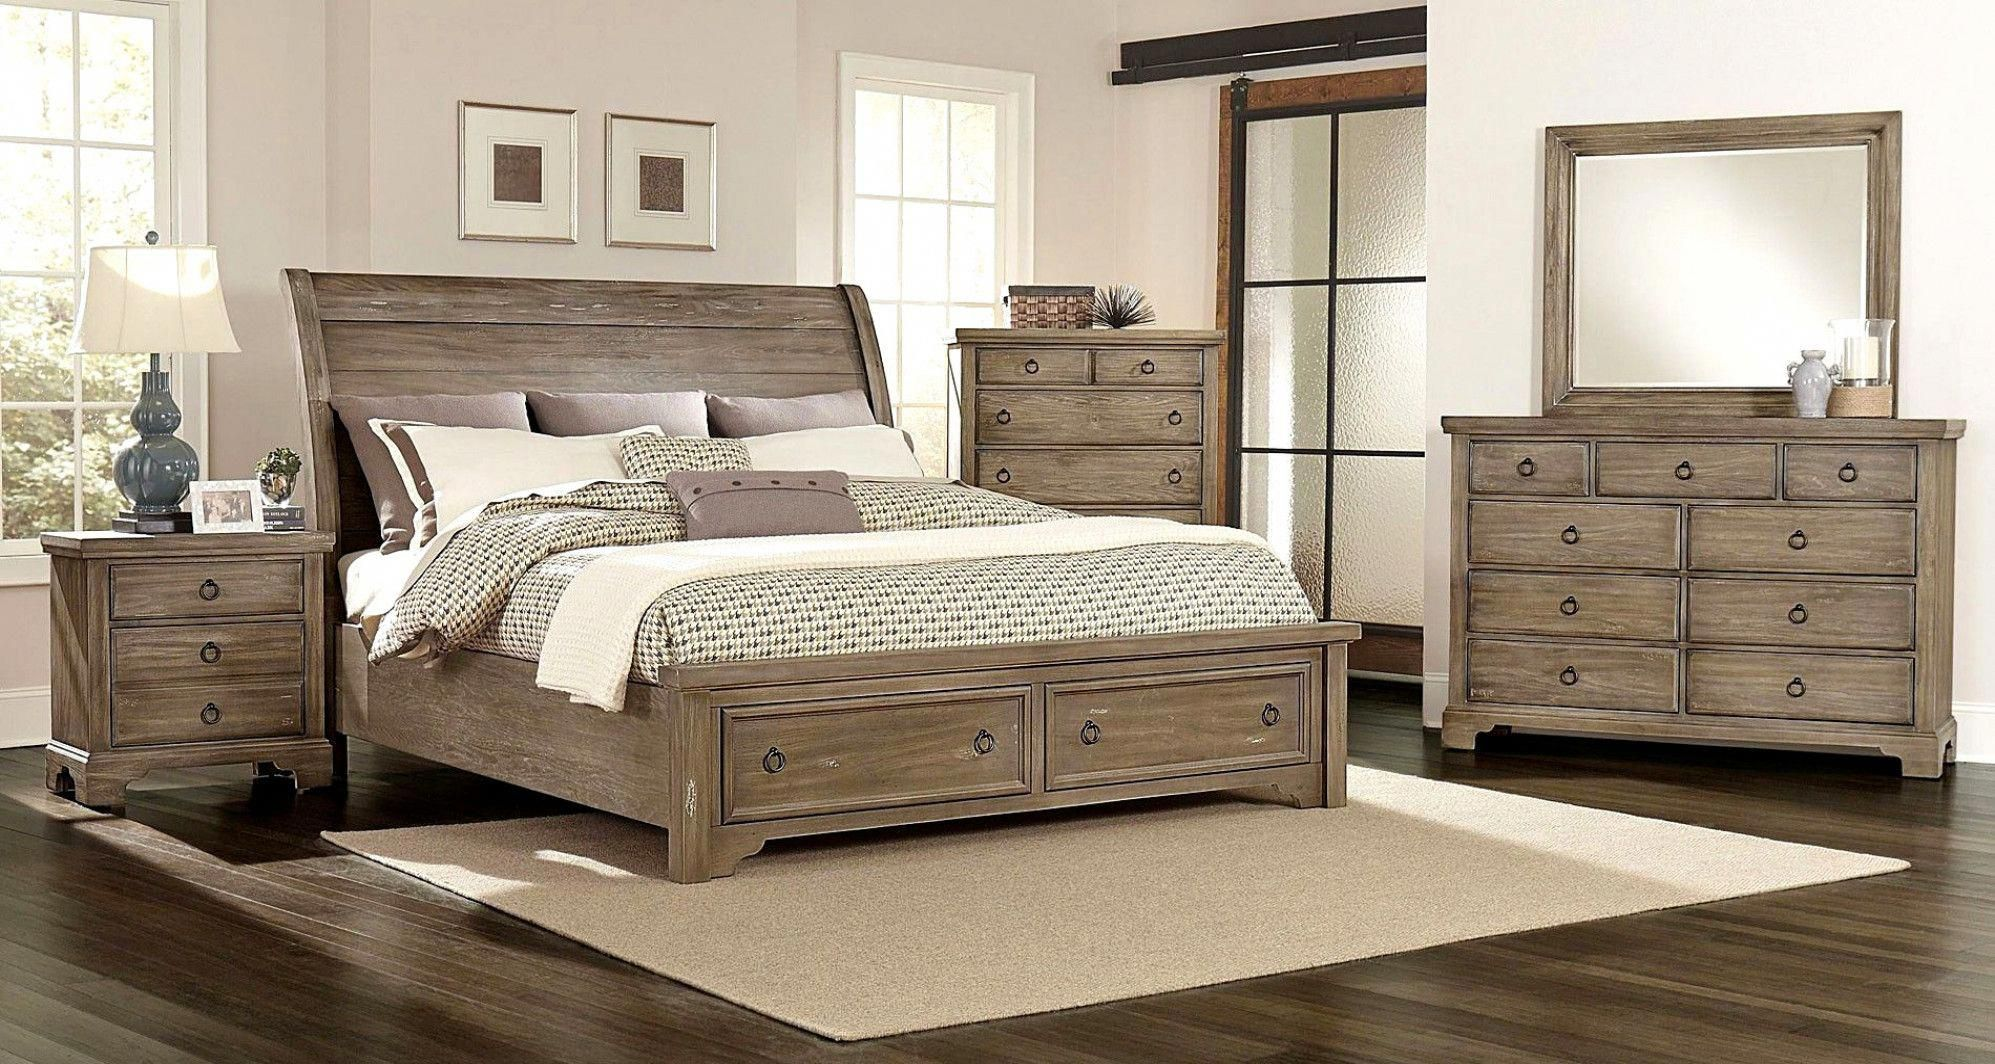 the armoire is the part of bed room furniture sets that can add a rh pinterest com